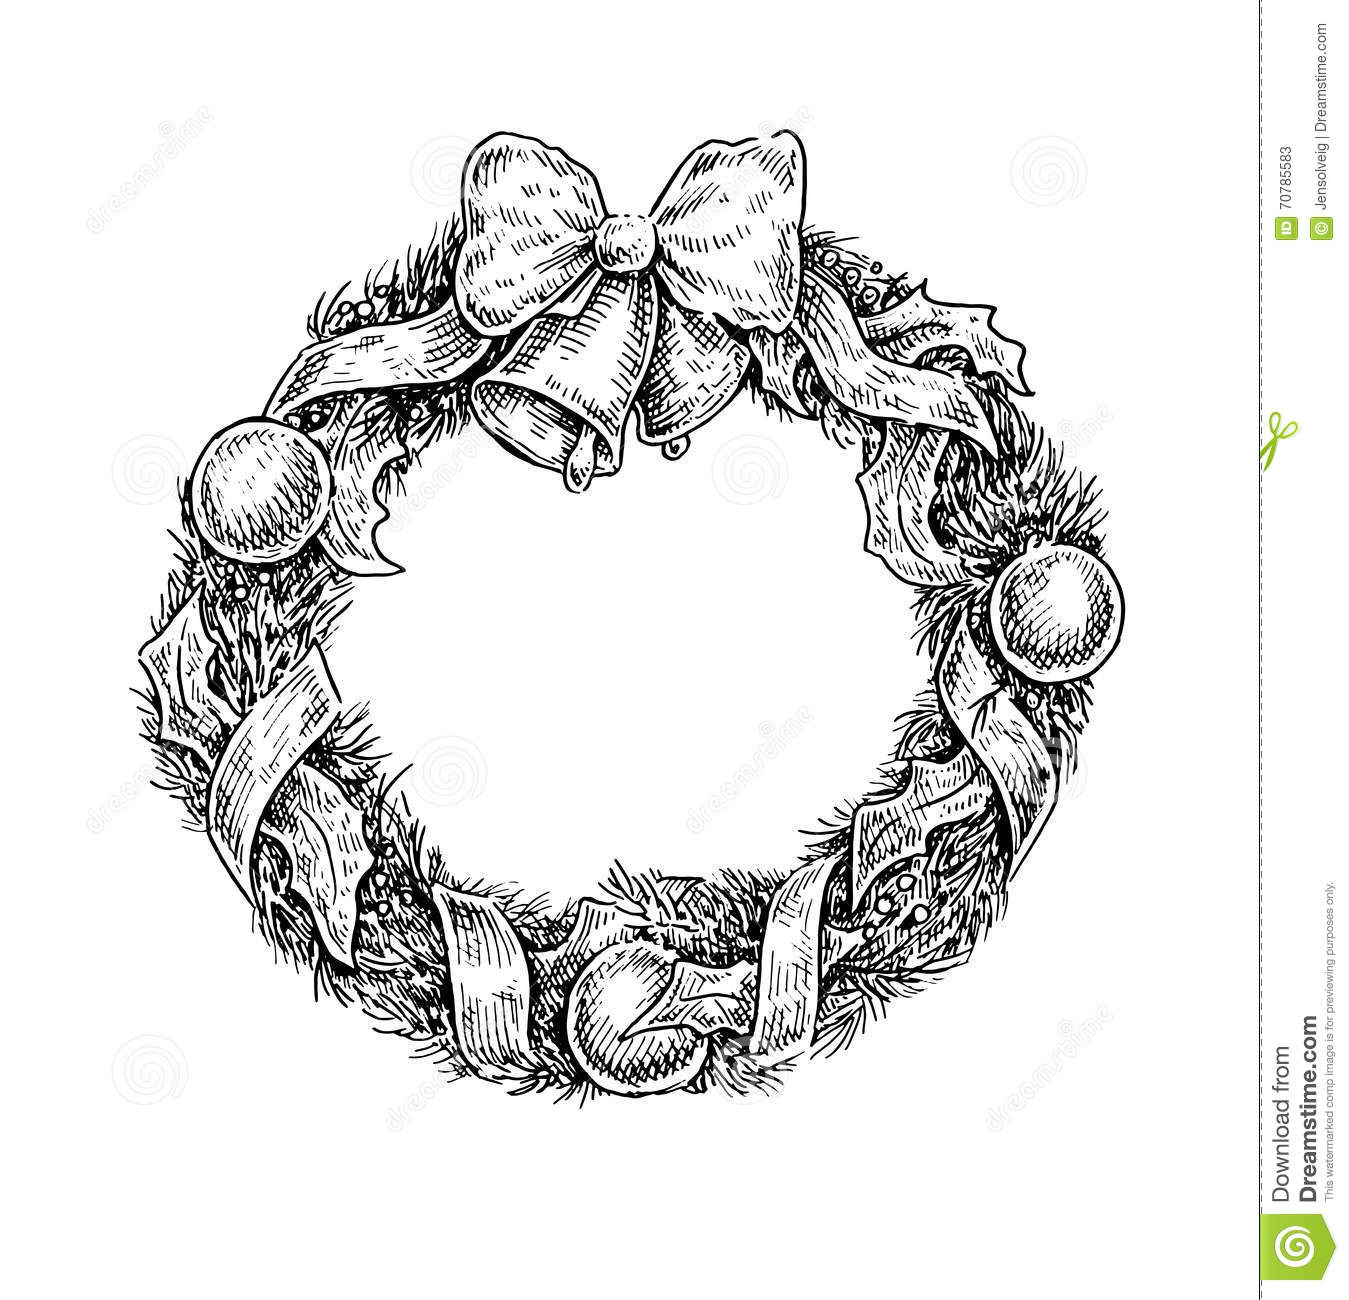 Black And White Vintage Sketchy Style Illustration Christmas Adornment